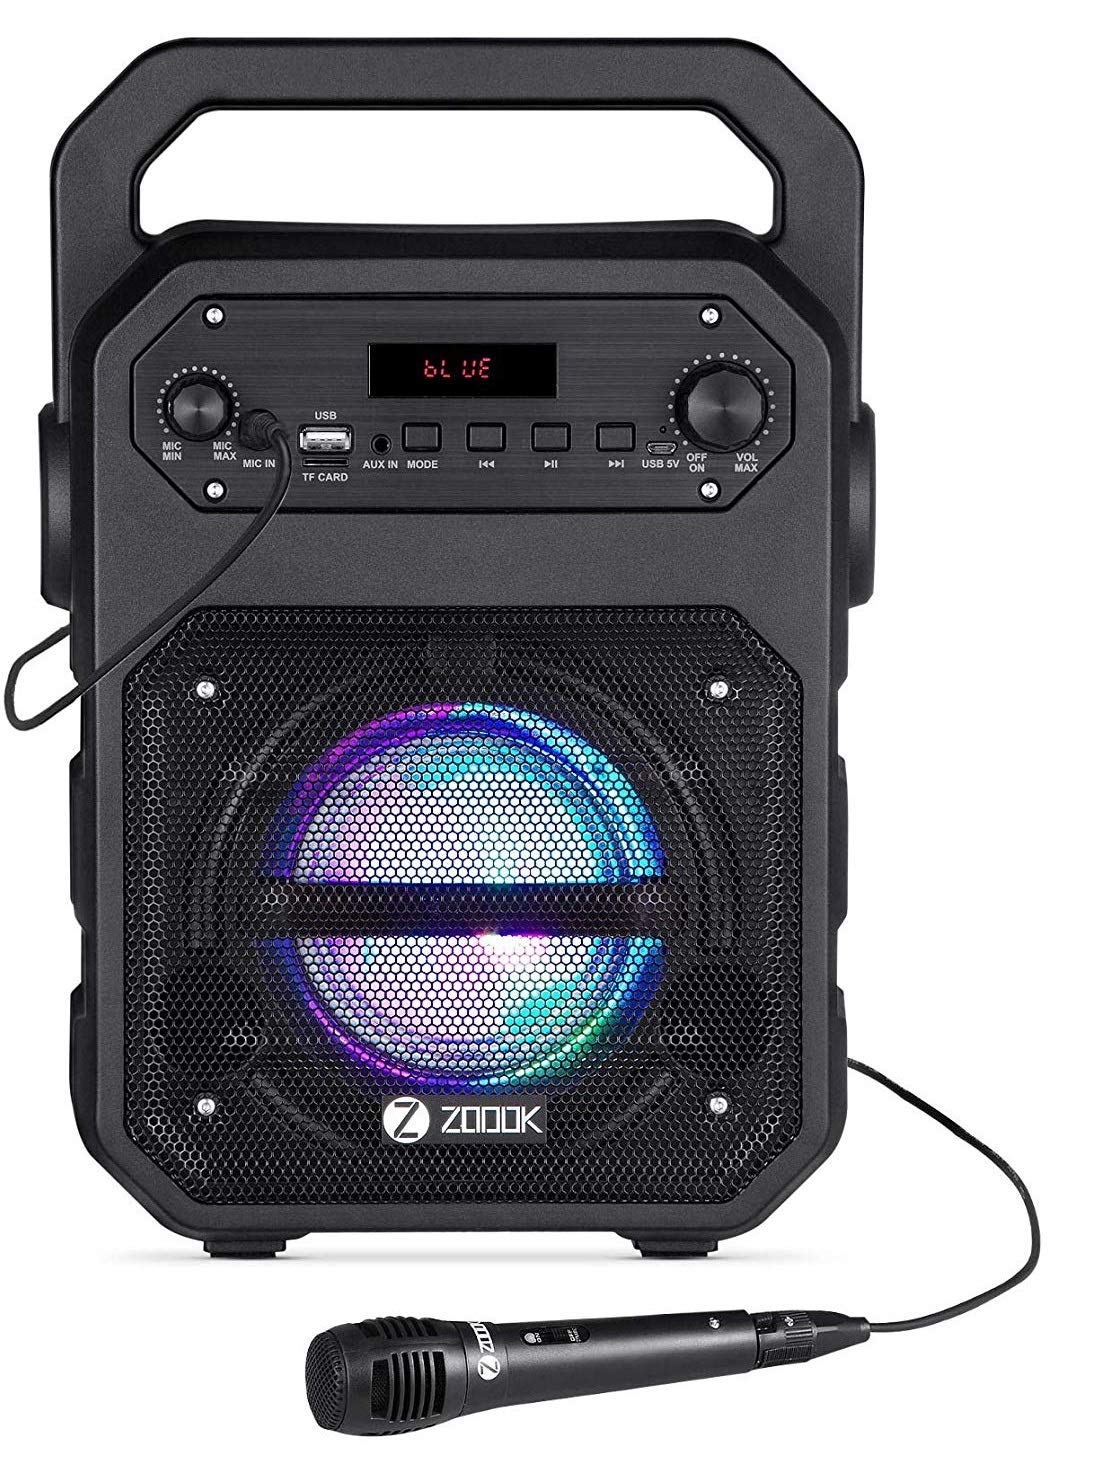 Zoook Rocker Thunder 20 watts Bluetooth Party Speaker with Karaoke Mic/TF/FM/LED/USB/Party Speaker (Black)